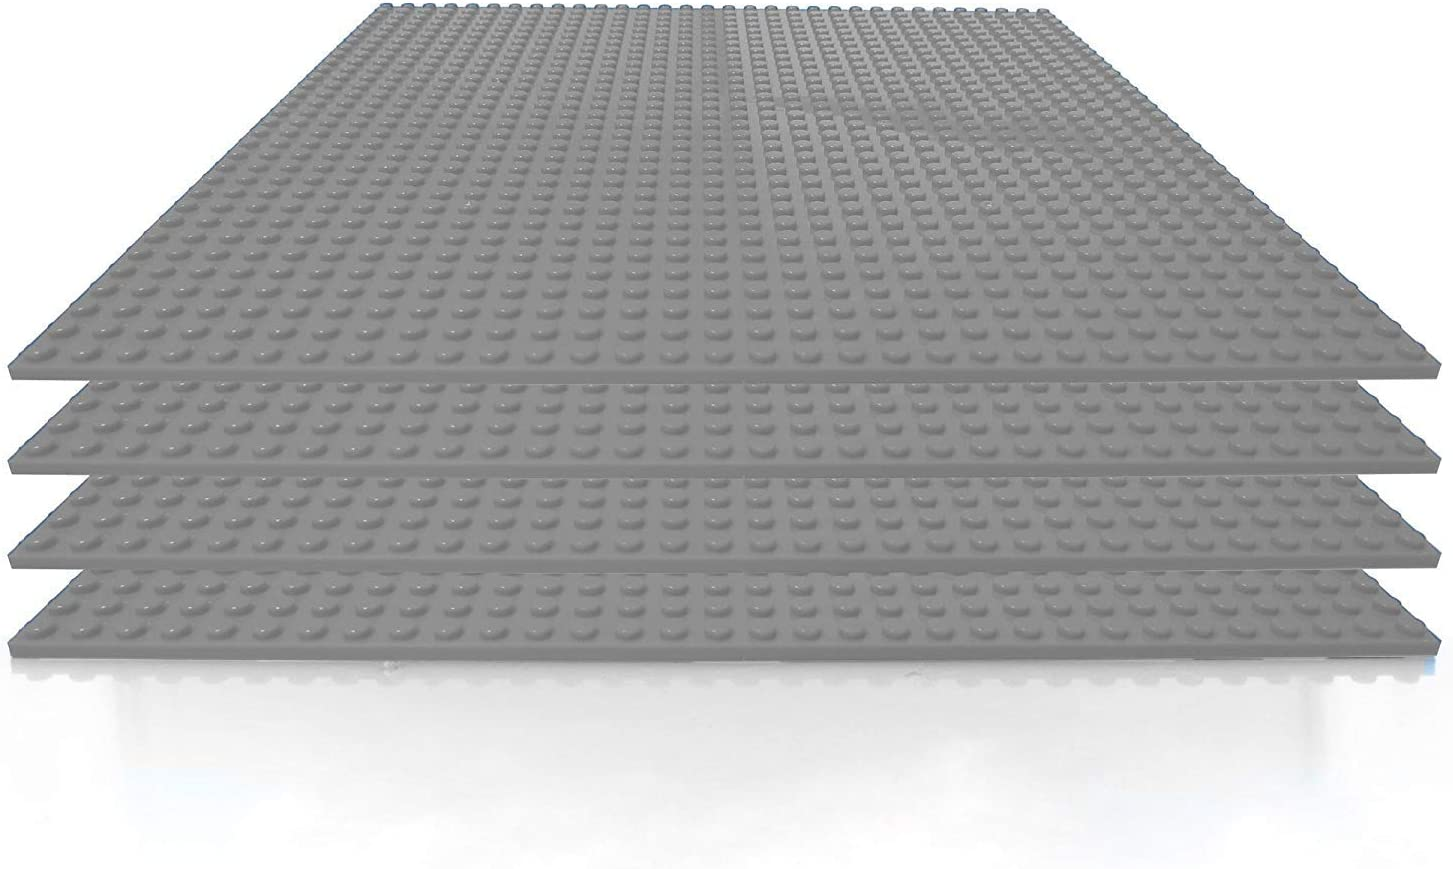 Building Bricks - 10 x Inch Wholesale Gray Pack Stackable Baseplate Award 4